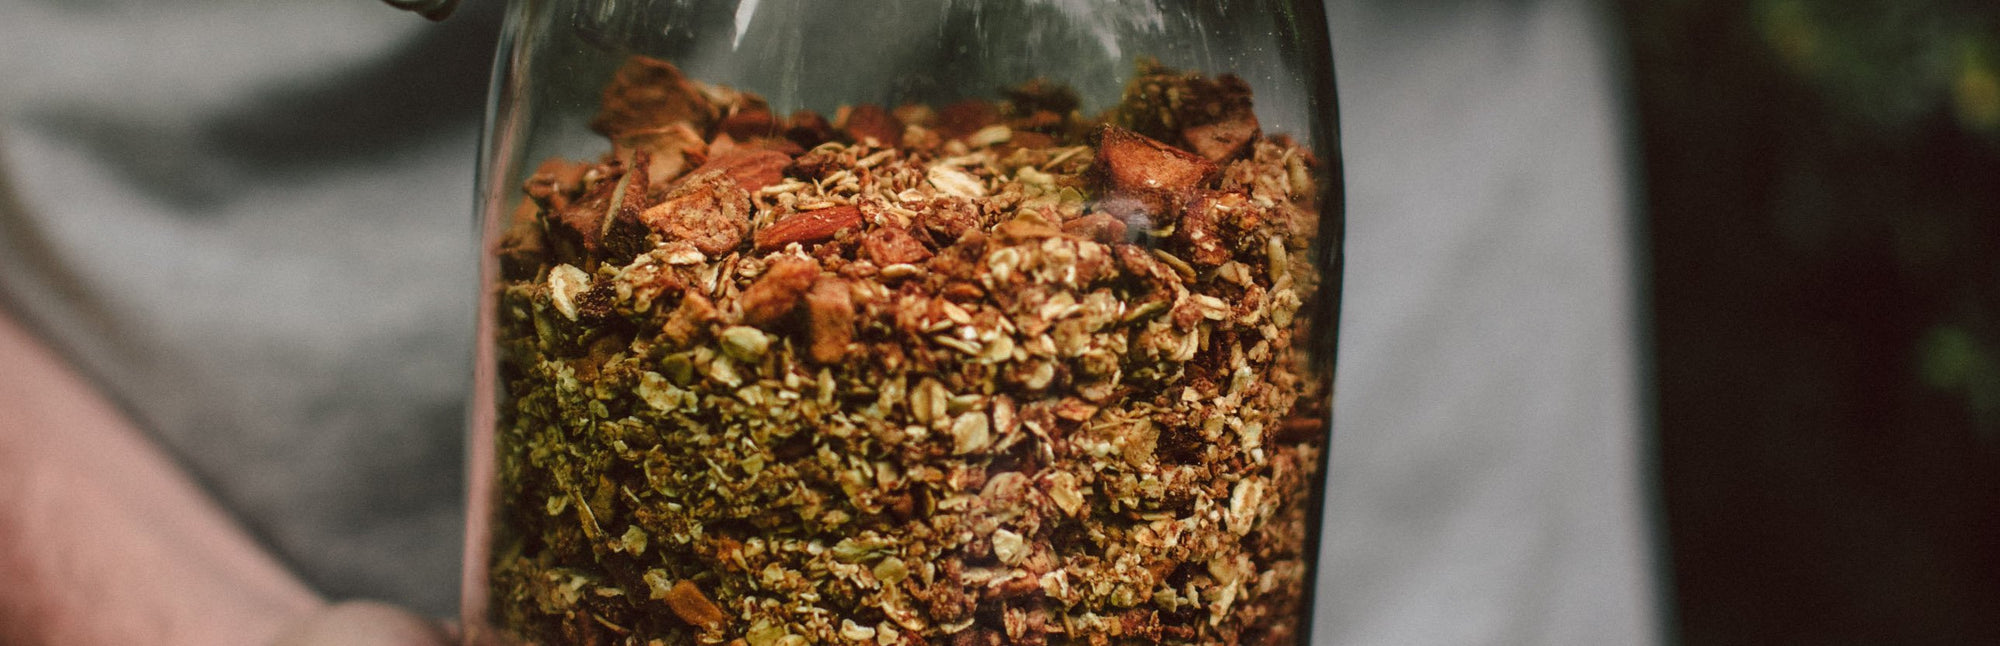 Healthy, vegan snack for the game: Spicy summer granola